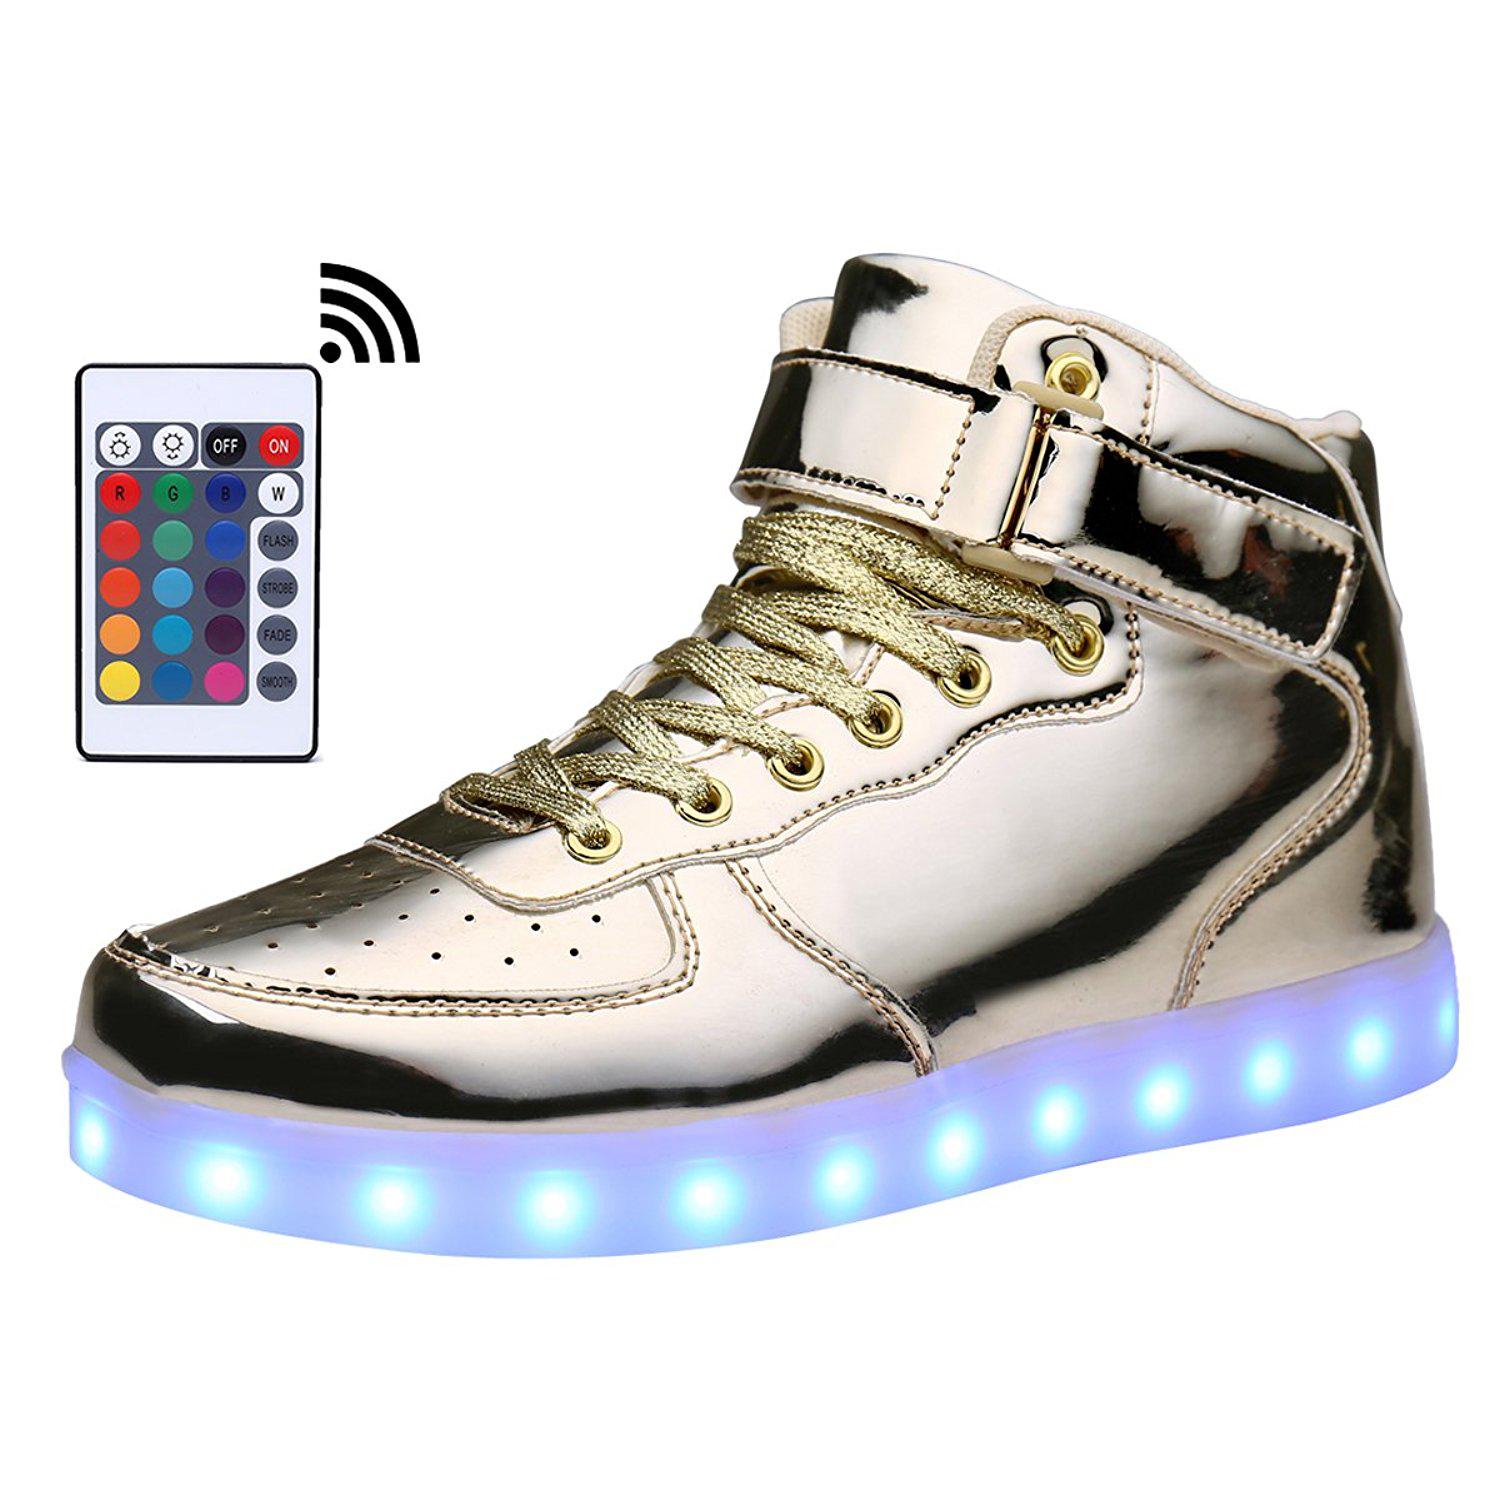 KRIATIV Adult Kids USB Charging High Top LED Shoes Light Up Flashing Sneakers Glowing Luminous Slippers